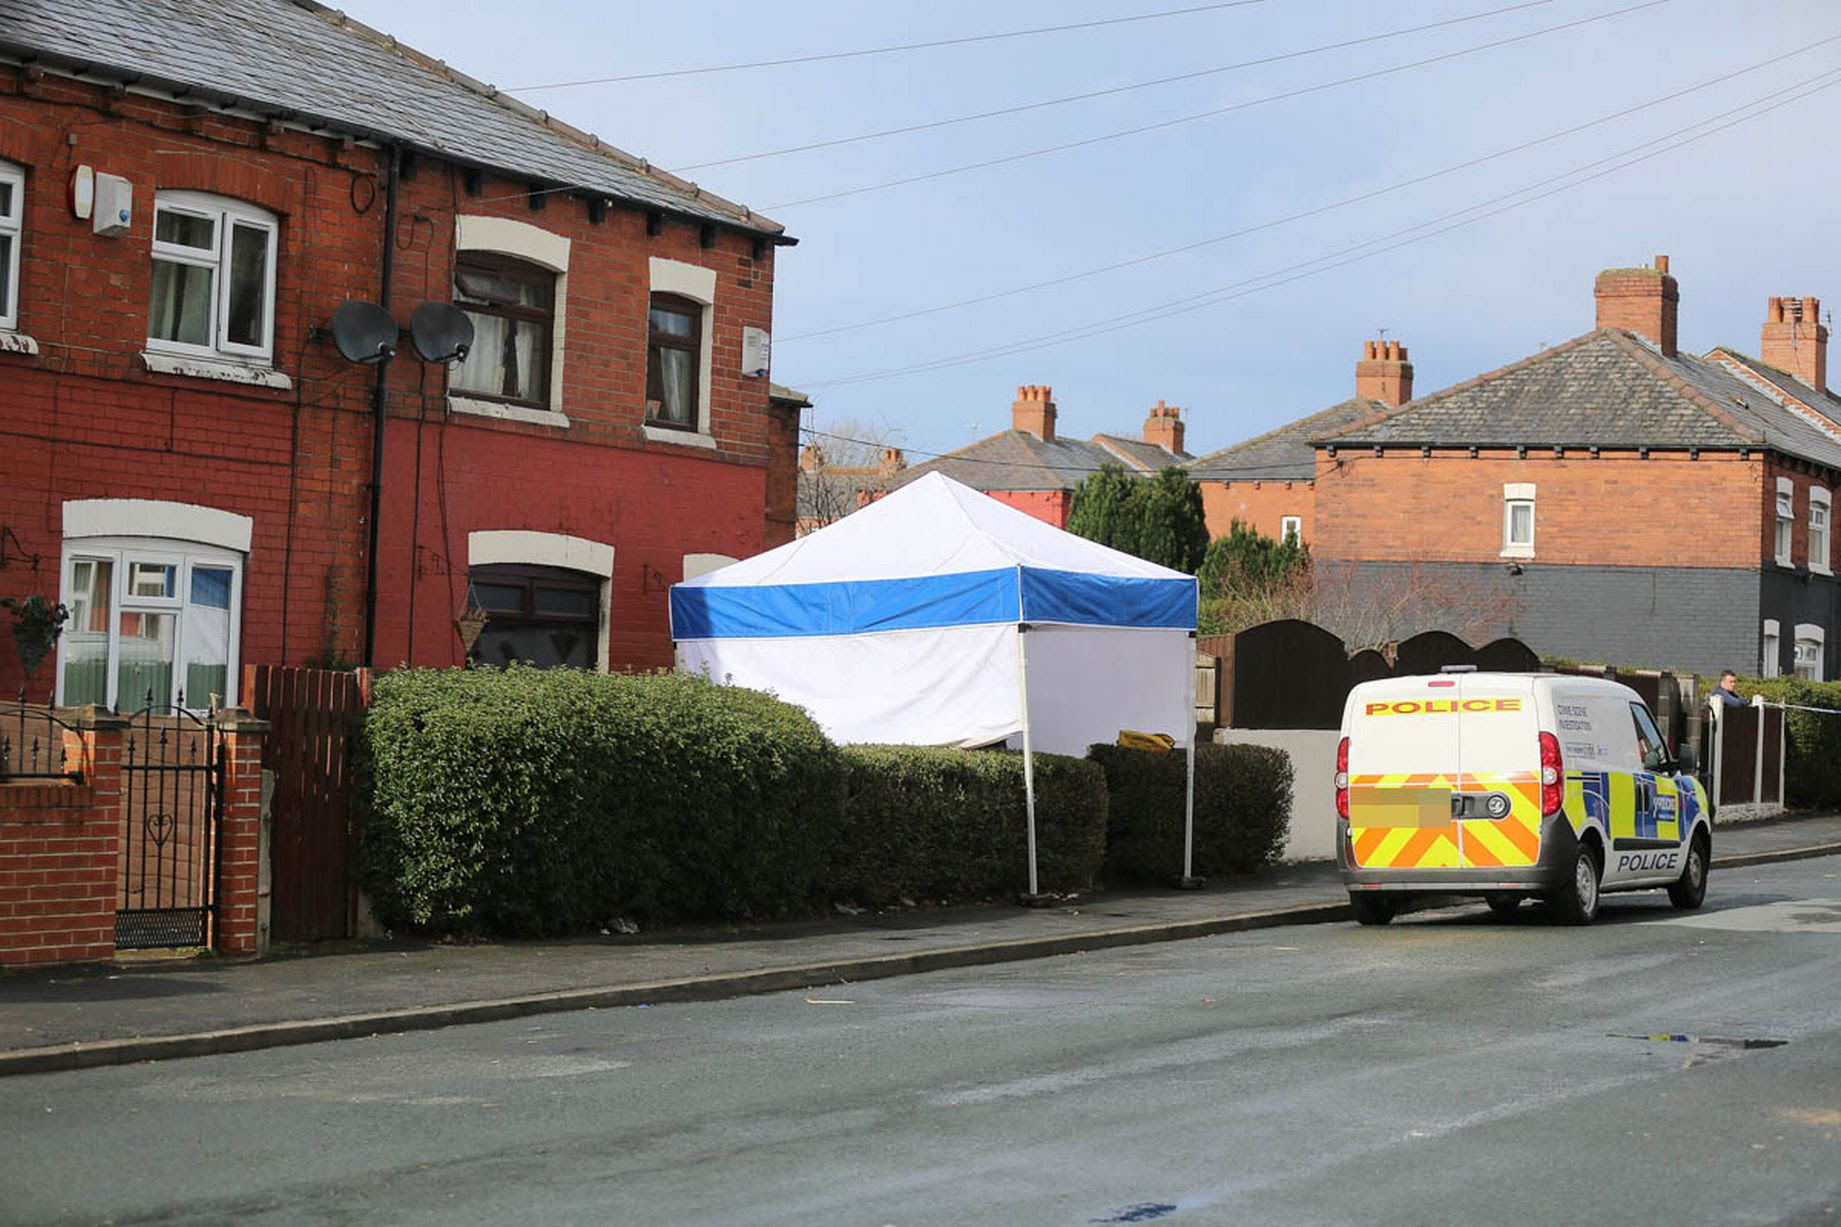 Police forensics and detectives at a house on East Park Street, Leeds, where three bodies have been found